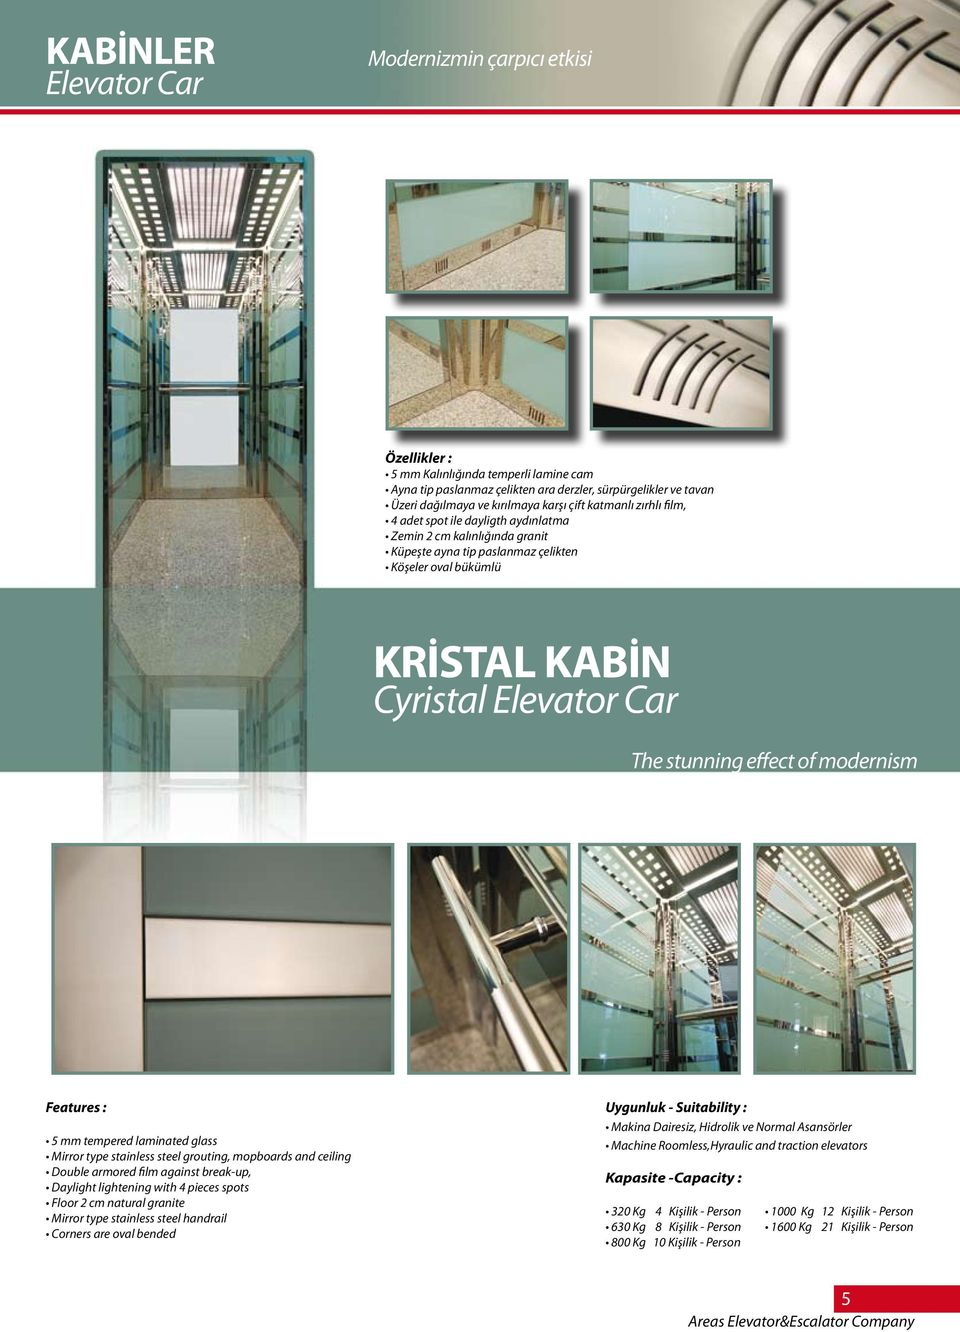 effect of modernism Features : 5 mm tempered laminated glass Mirror type stainless steel grouting, mopboards and ceiling Double armored film against break-up, Daylight lightening with 4 pieces spots